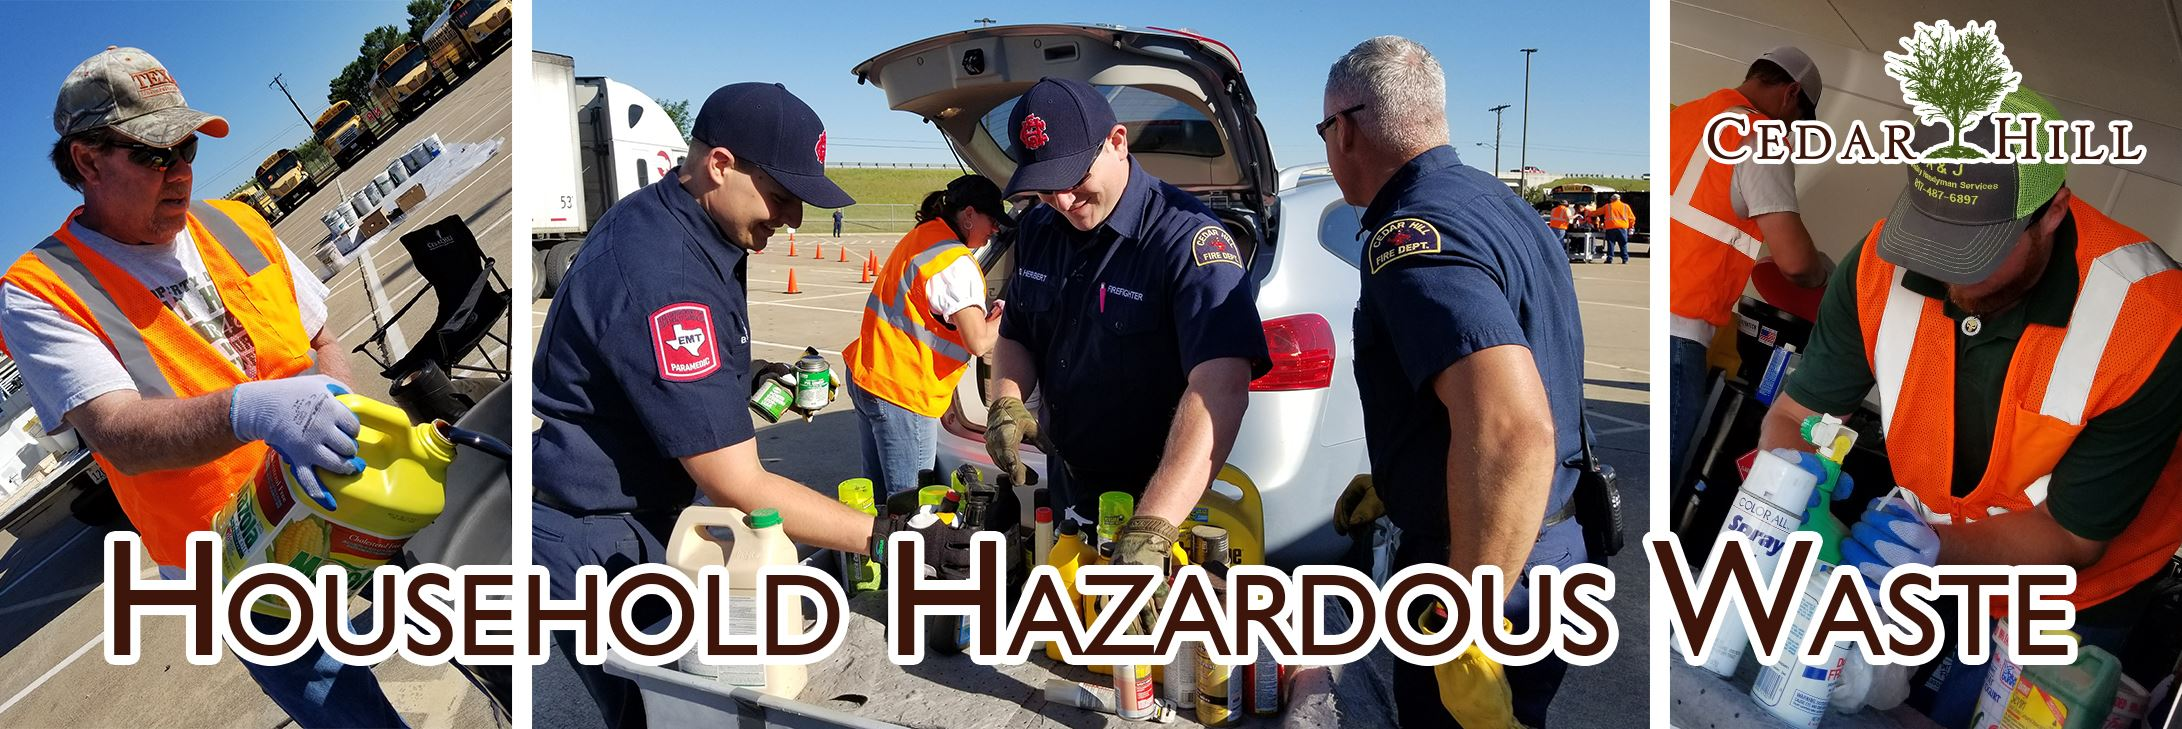 household hazardous waste cedar hill tx official website